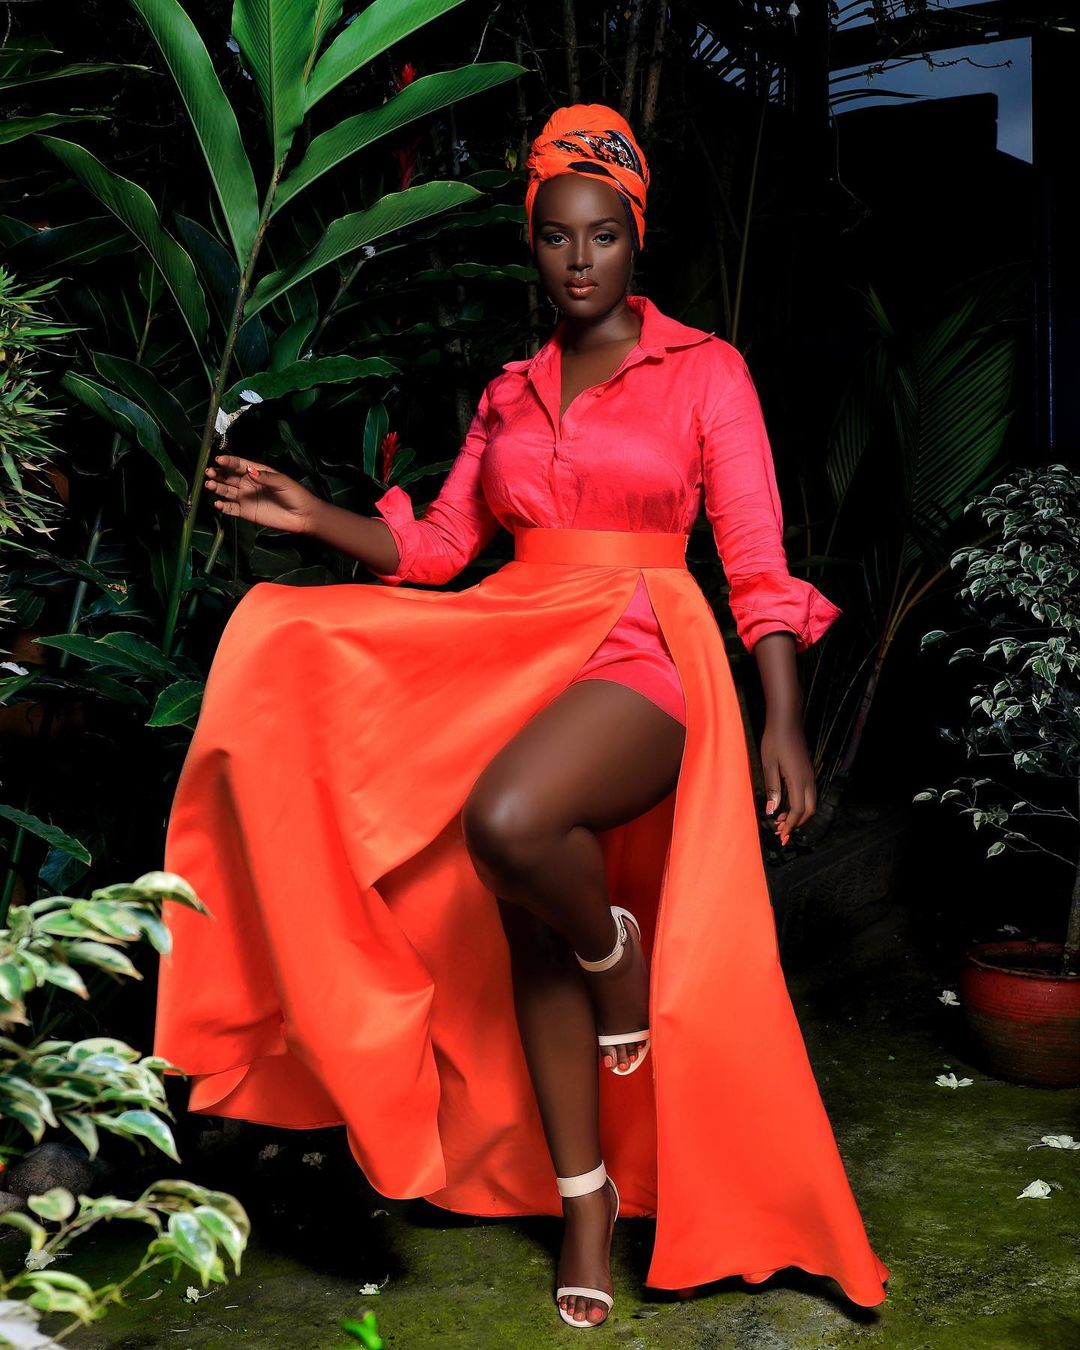 Bettinah Tianah Keeps It Simple With Elegant Pose